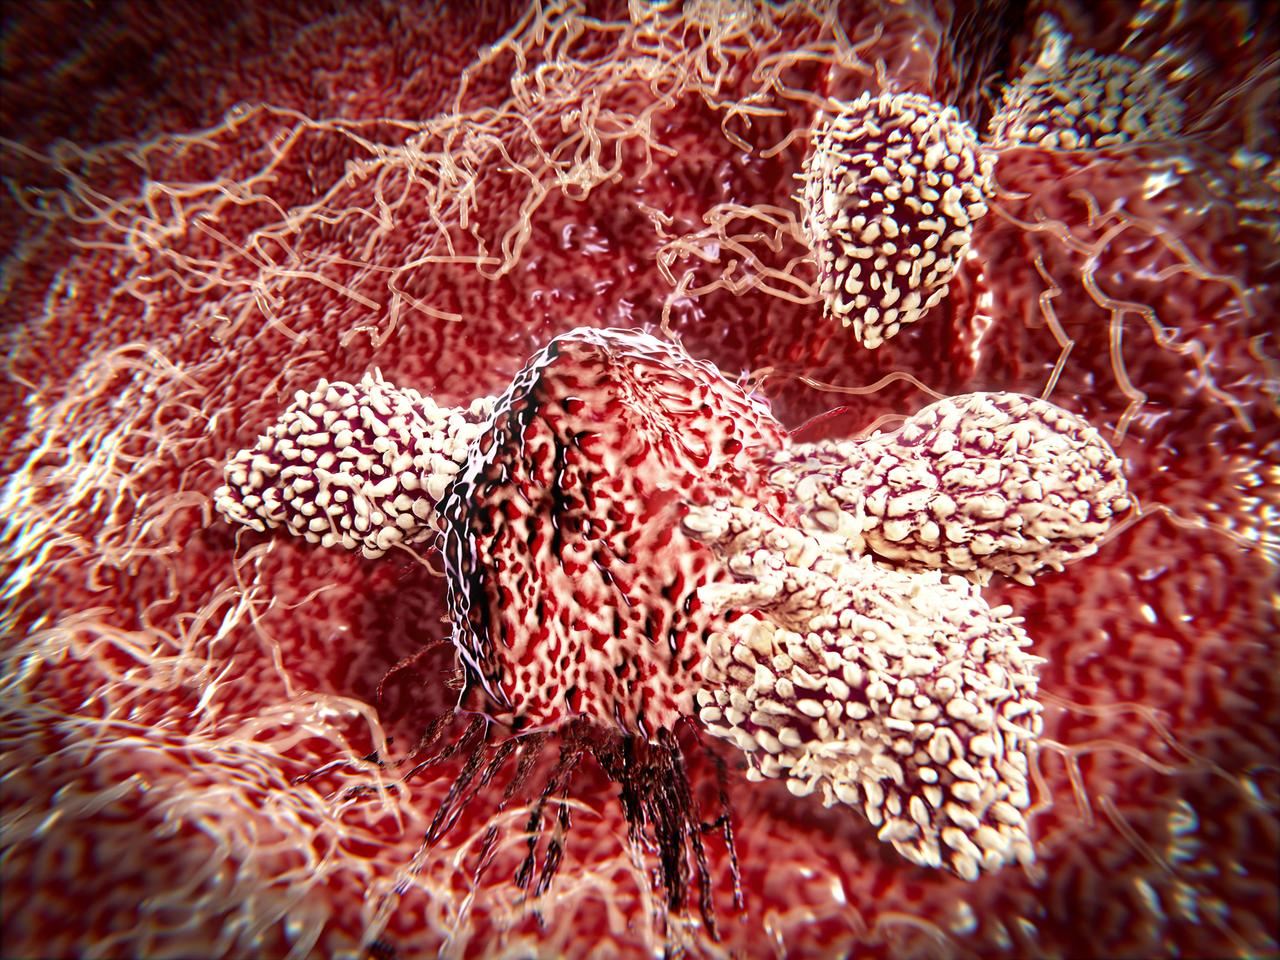 Scientists have found that fatty acids produced by gut bacteria could improve cancer immunotherapy